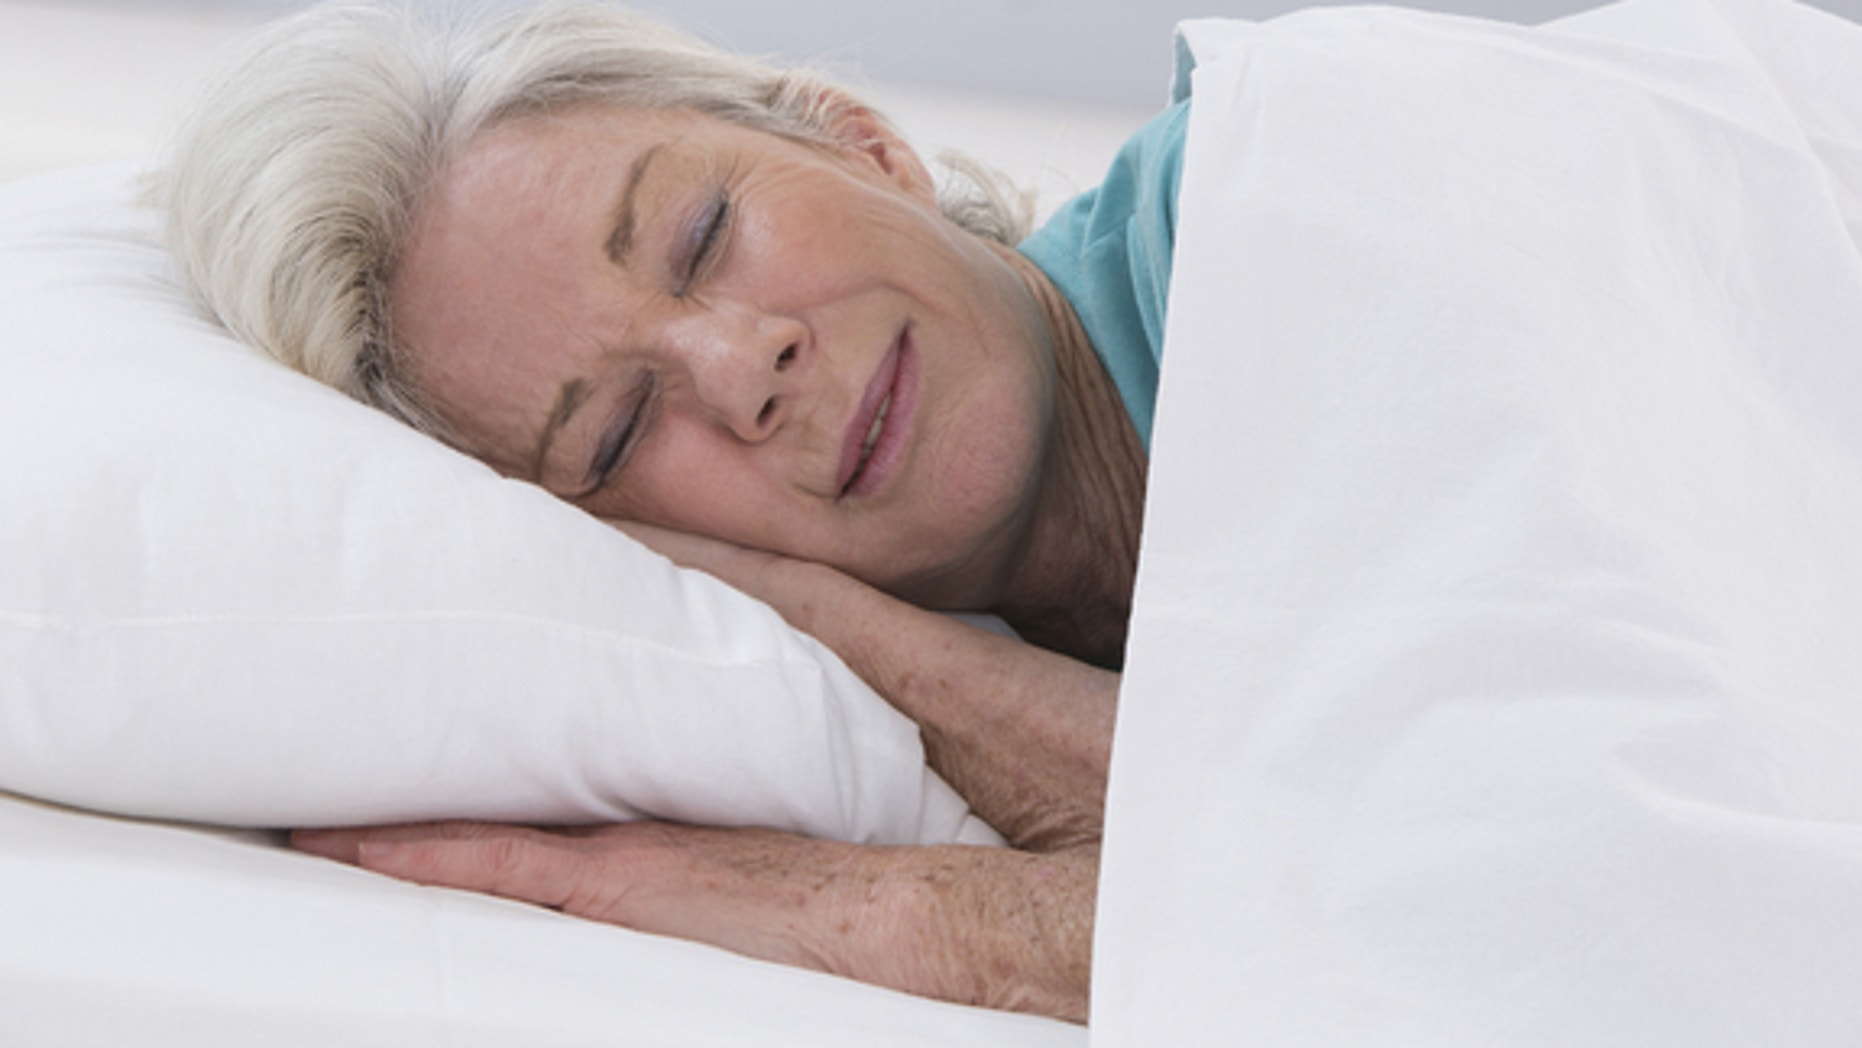 Unhealthy sleep patterns combined with other factors could increase mortality risk, according to a study in Australia of people ages 45 and older.